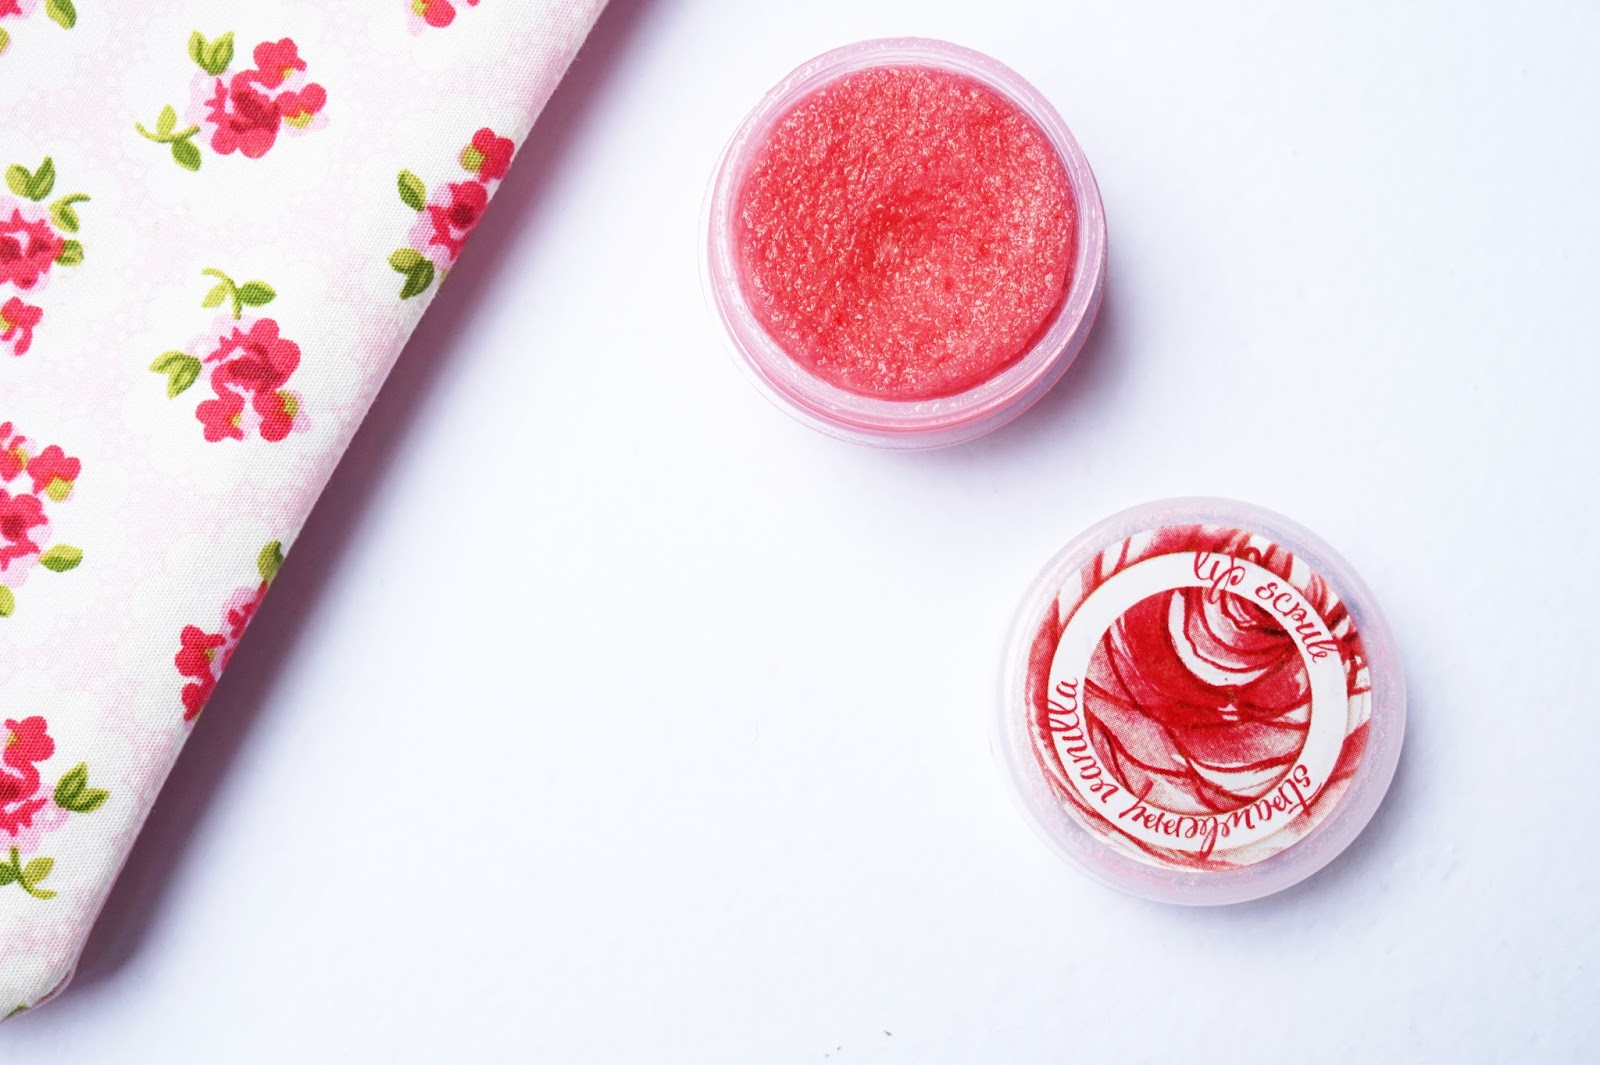 ellana mineral strawberry vanilla lip scrub